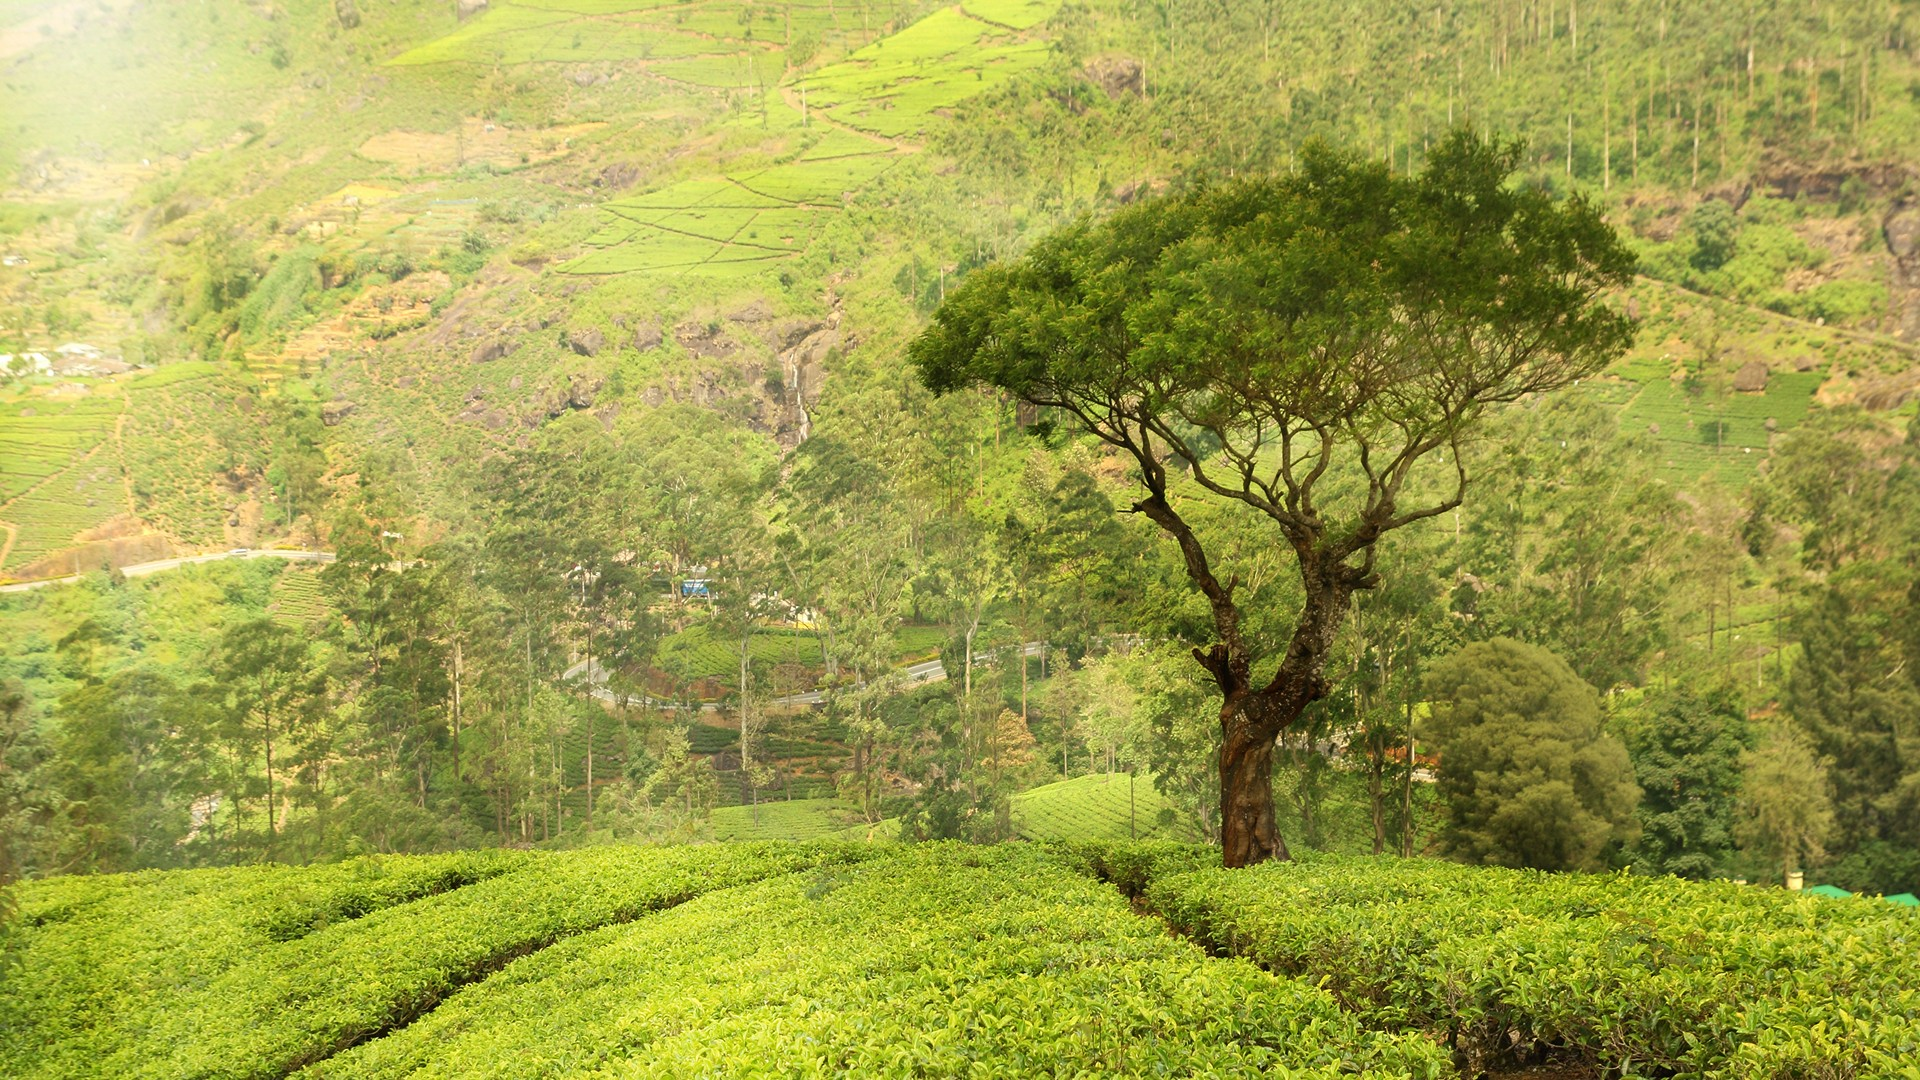 Top 16 Best Places to Visit in Munnar in 2019 (Map & Photos